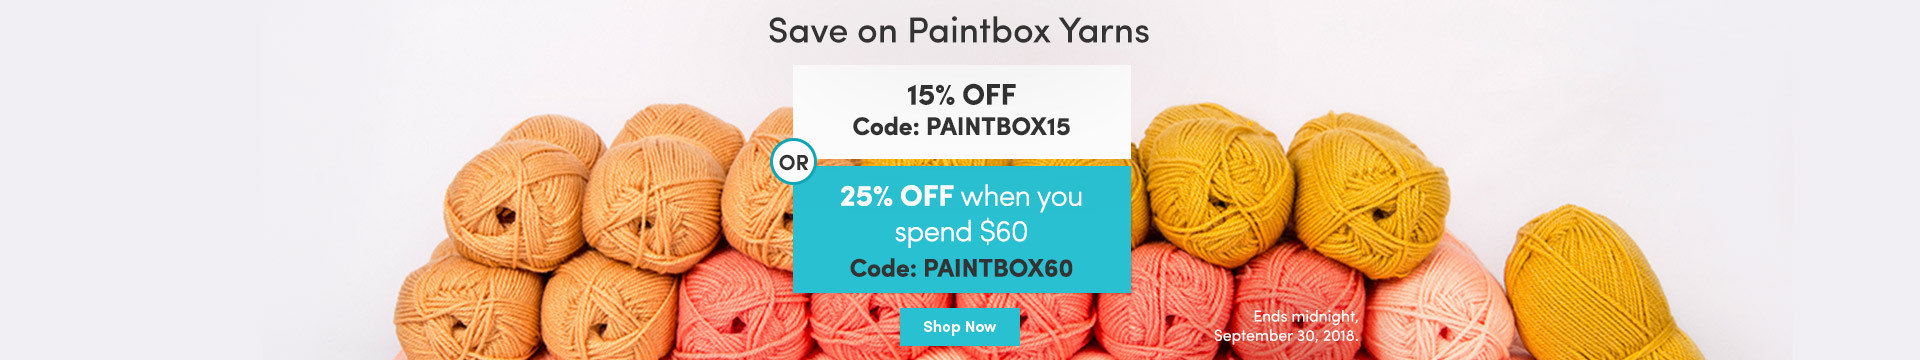 LK Marketing NA 25% off Paintbox